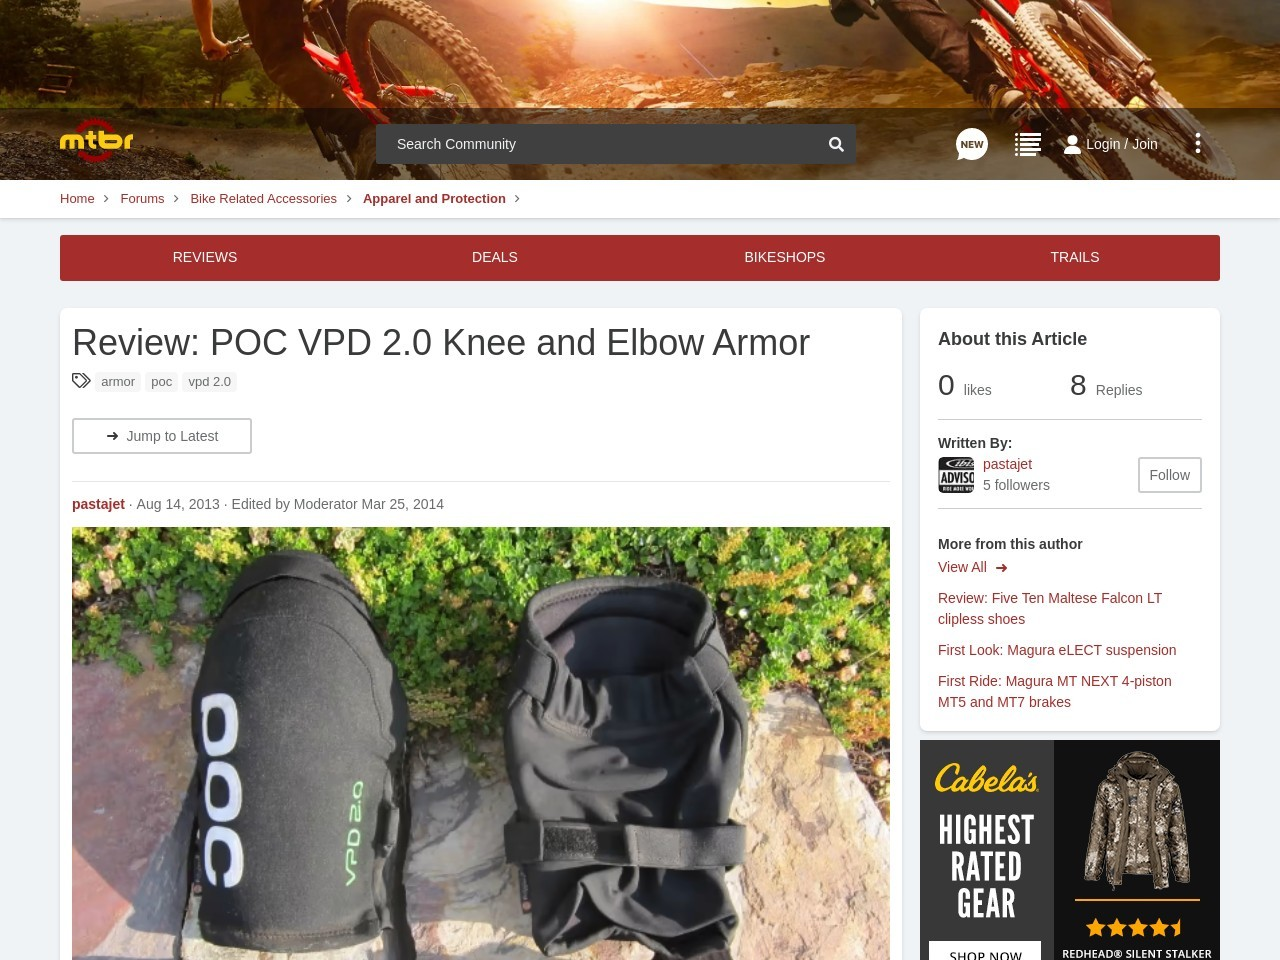 Review: POC VPD 2.0 Knee and Elbow Armor | Mountain Bike Review